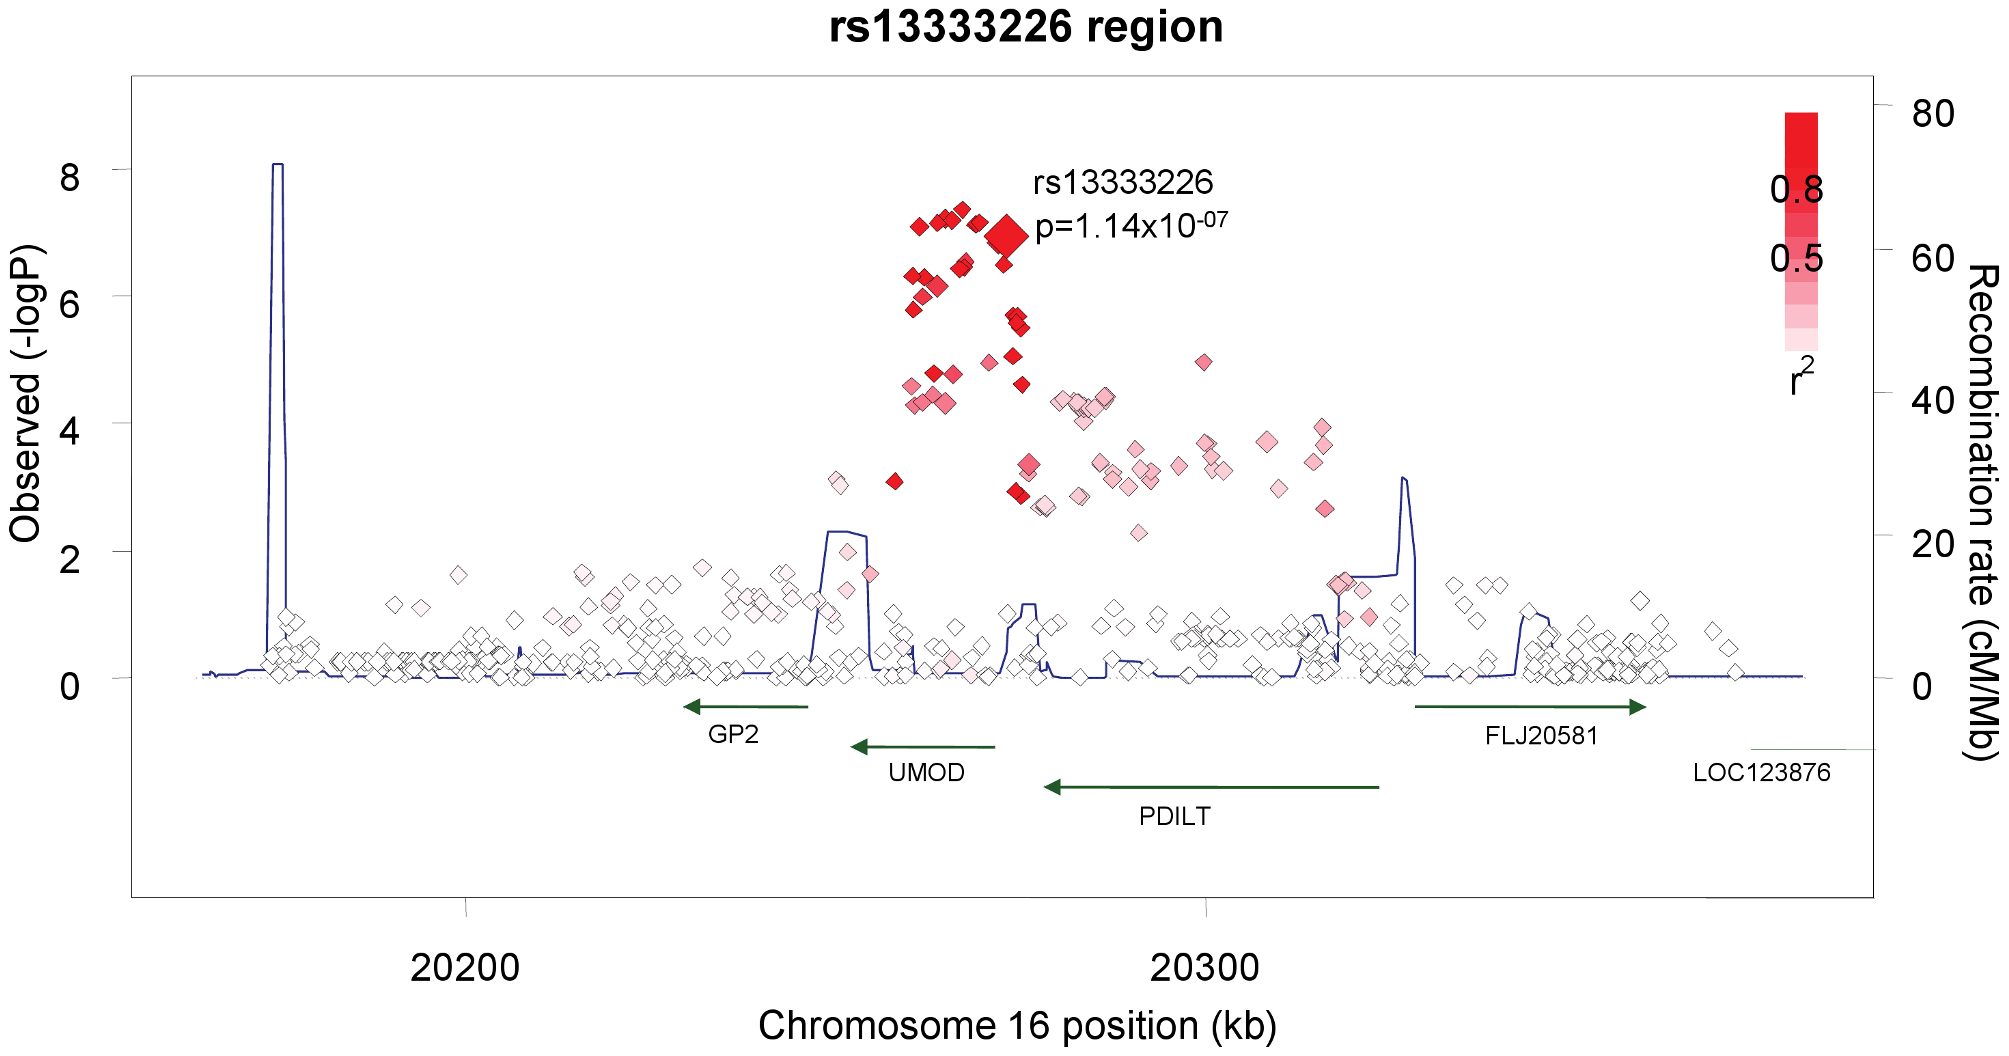 Association plot of the genomic region around rs13333226 showing both typed and imputed SNPs with location of genes and recombination rate.